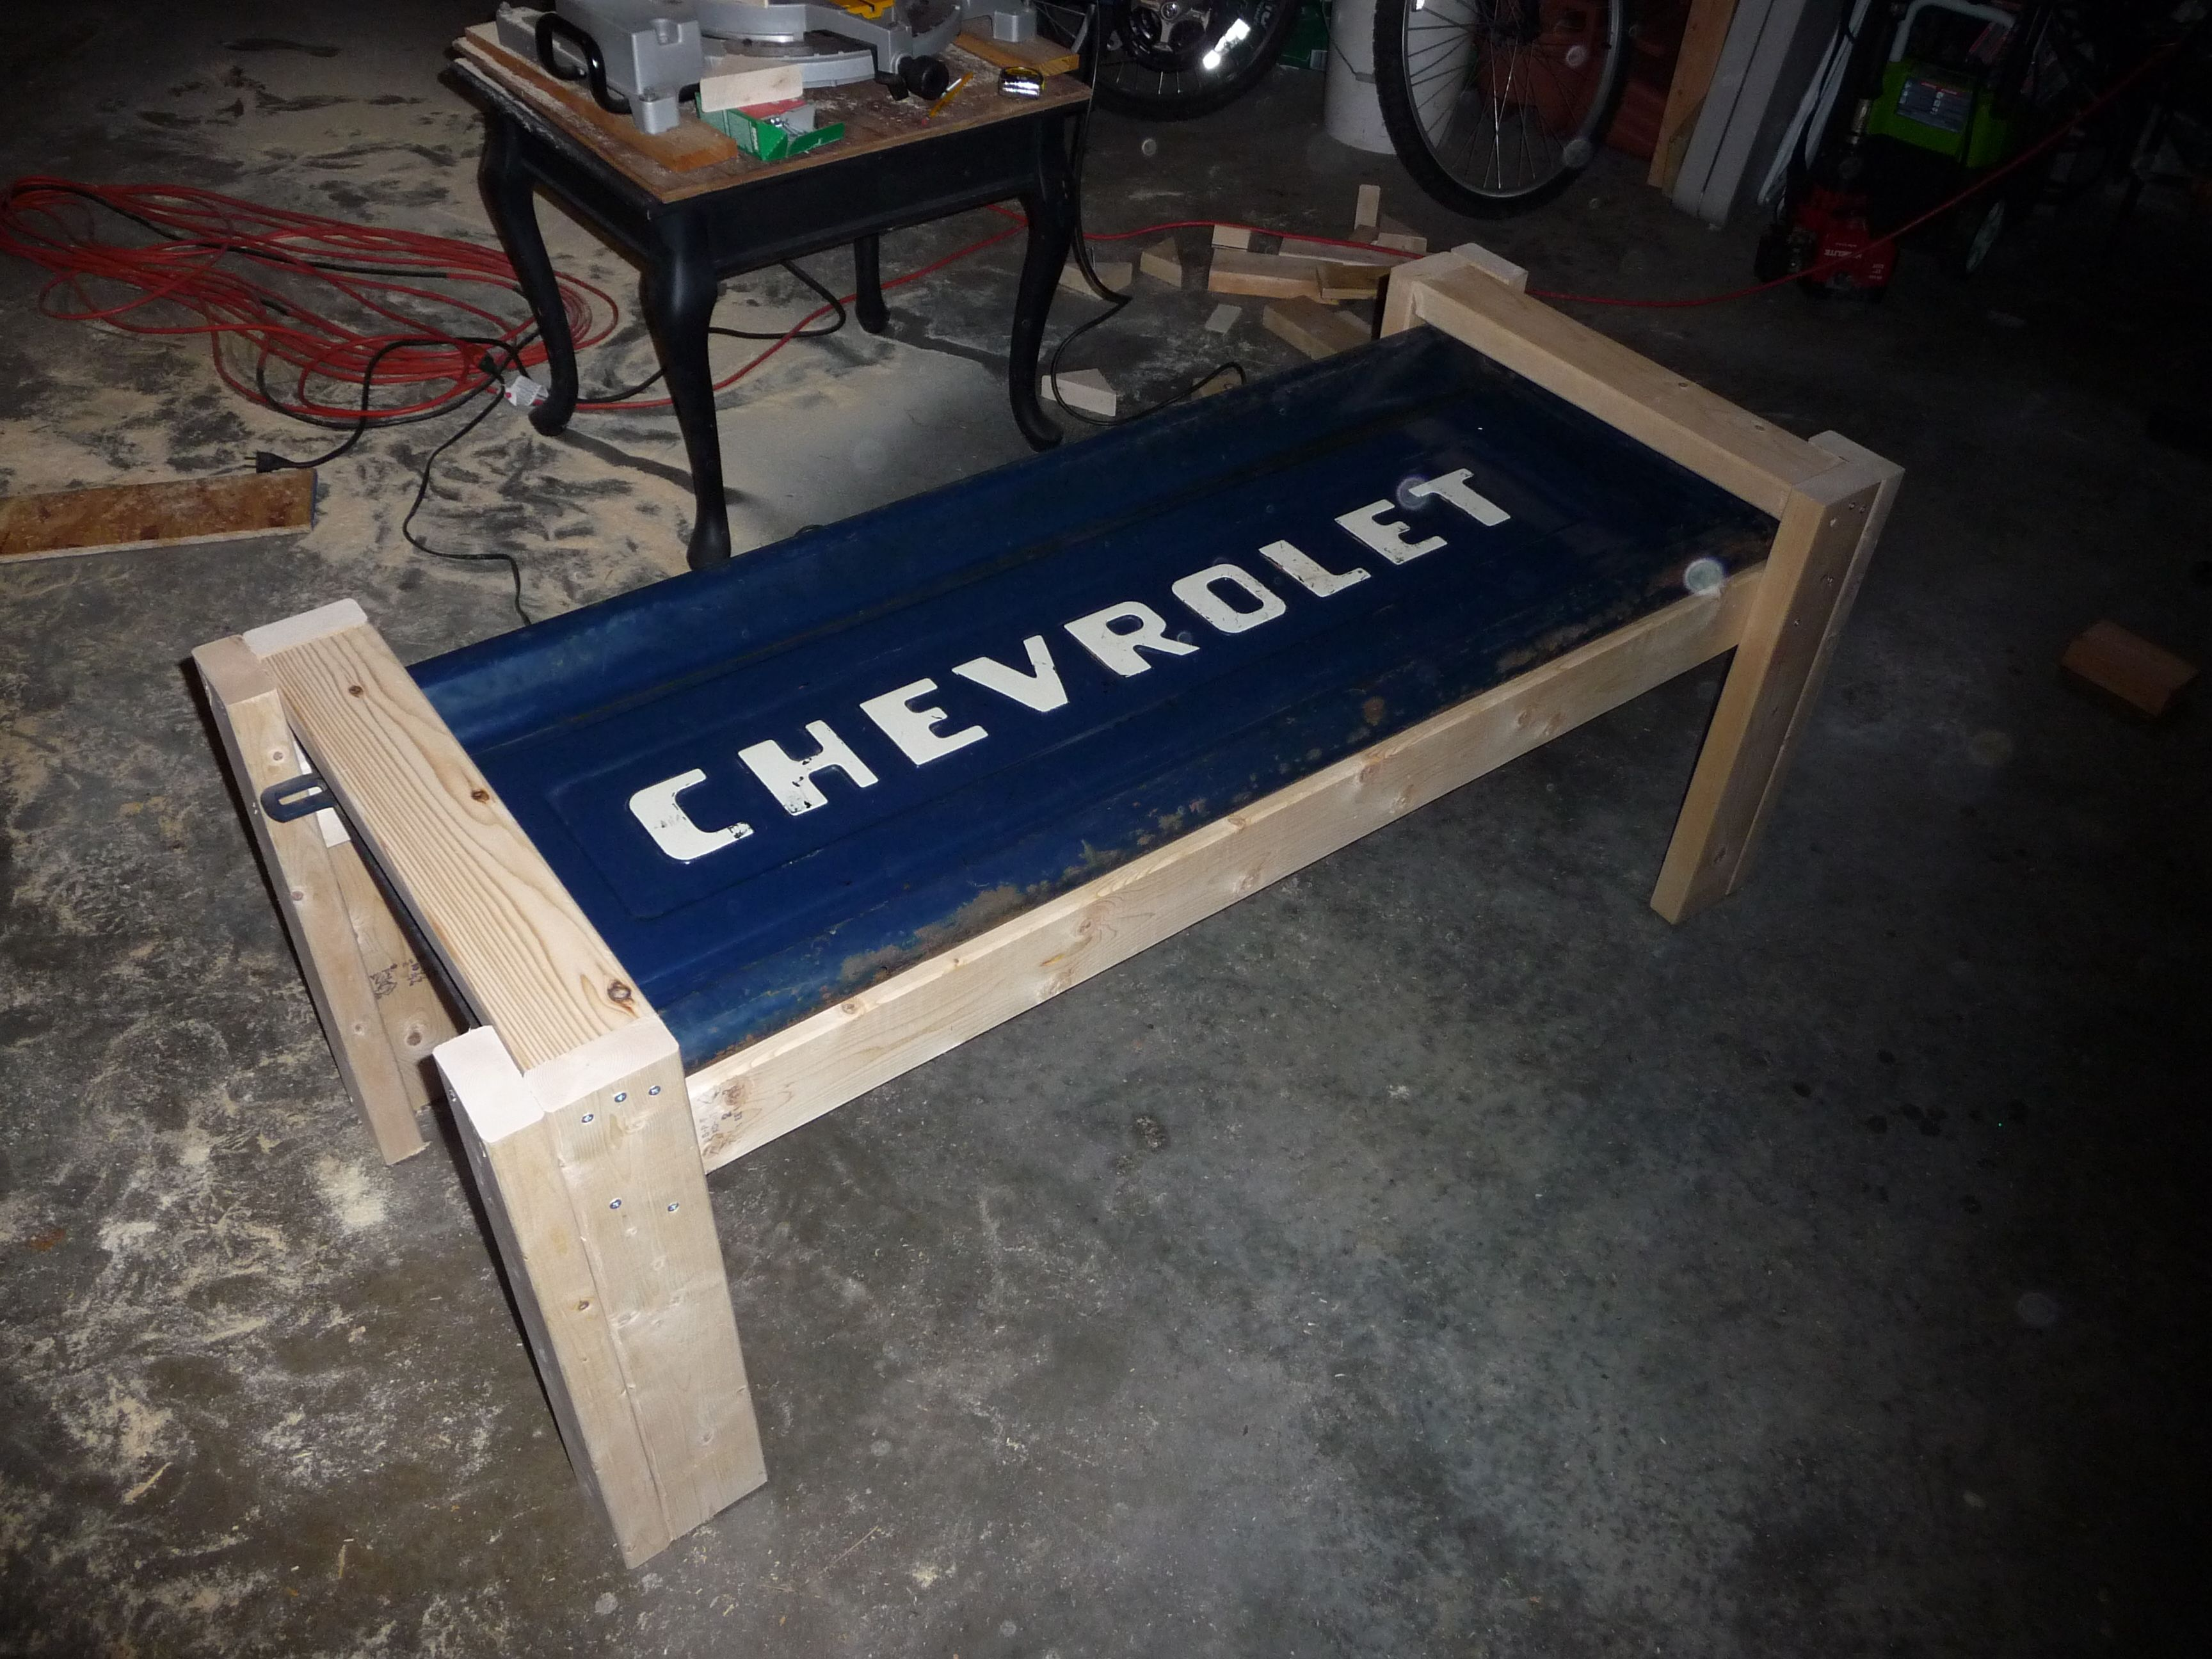 I made this coffee table out of an old Chevy tailgate and some